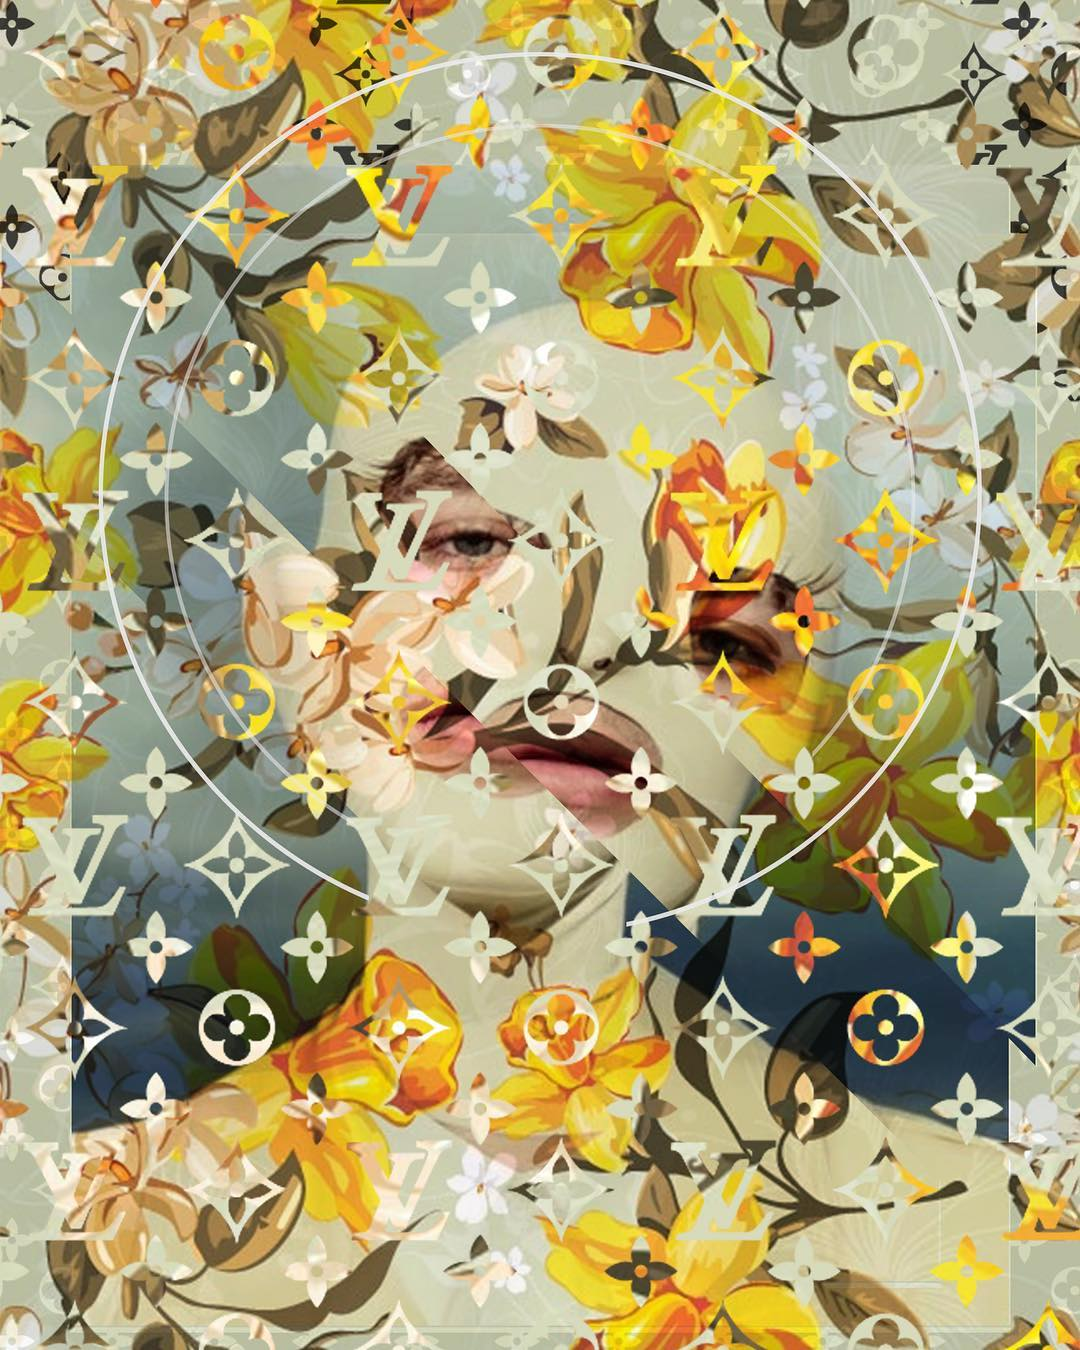 collages-by-molly-scannell-a-collage-6